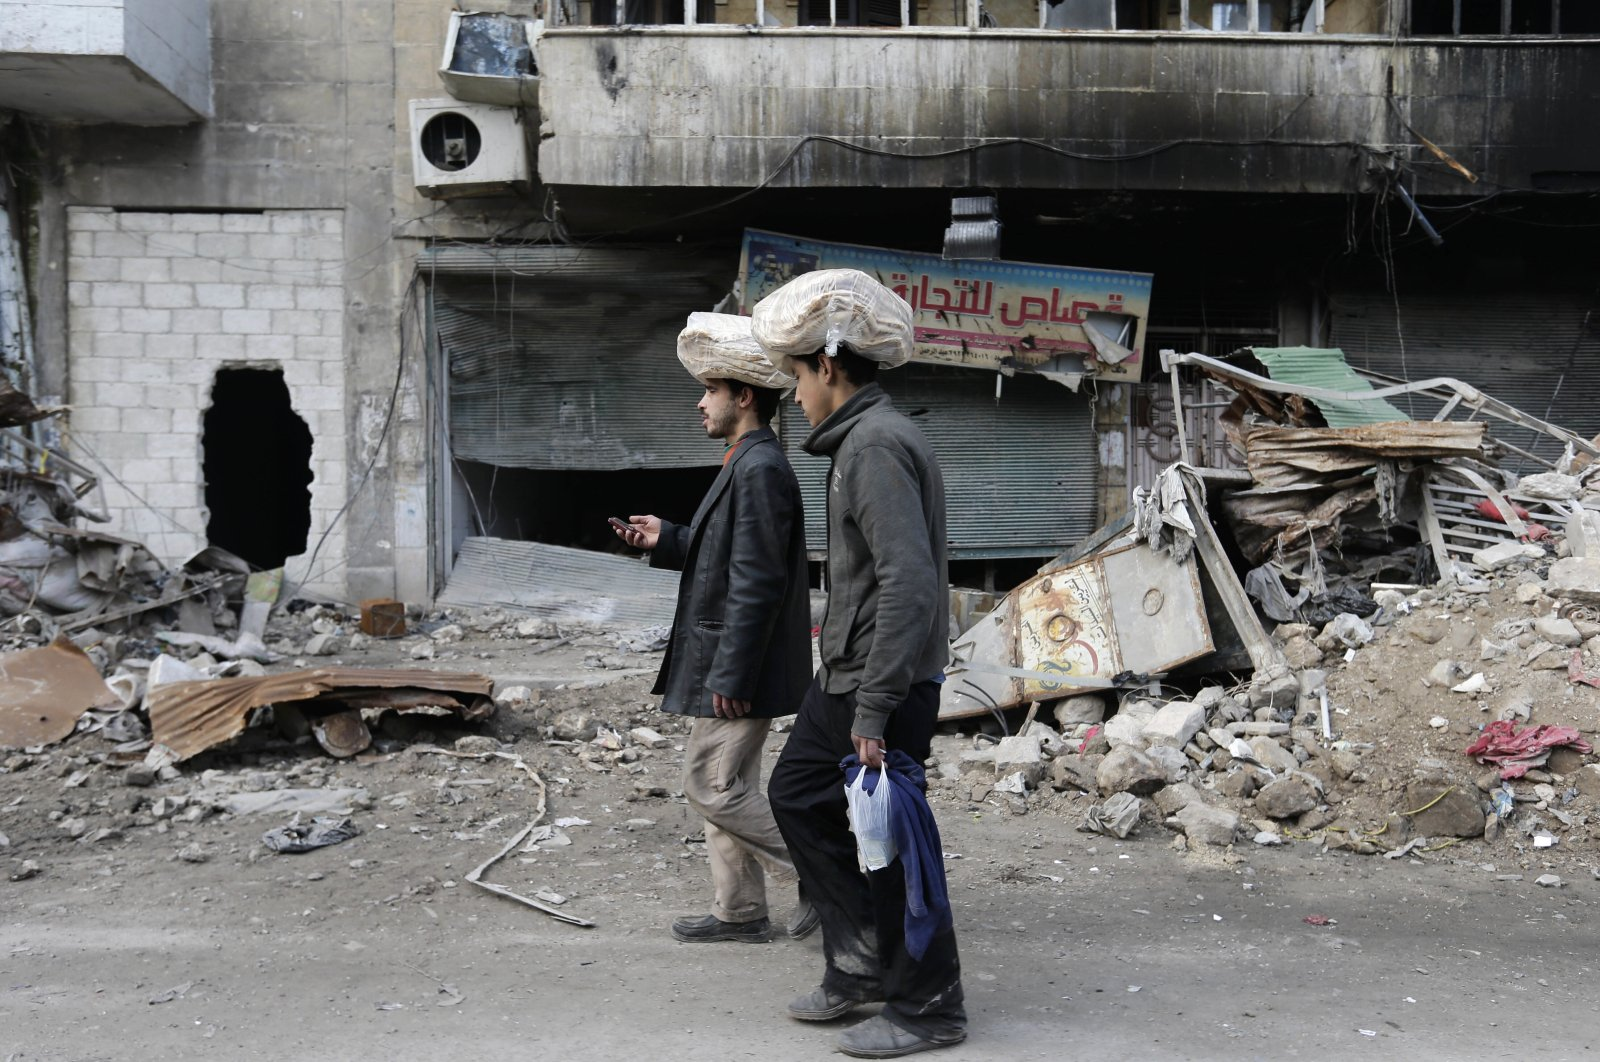 Syrian men carry bags of bread on their heads while walking back to their homes in the once opposition-held Bustan al-Qasr neighborhood in eastern Aleppo, Syria, Jan. 20, 2017. (AP Photo)